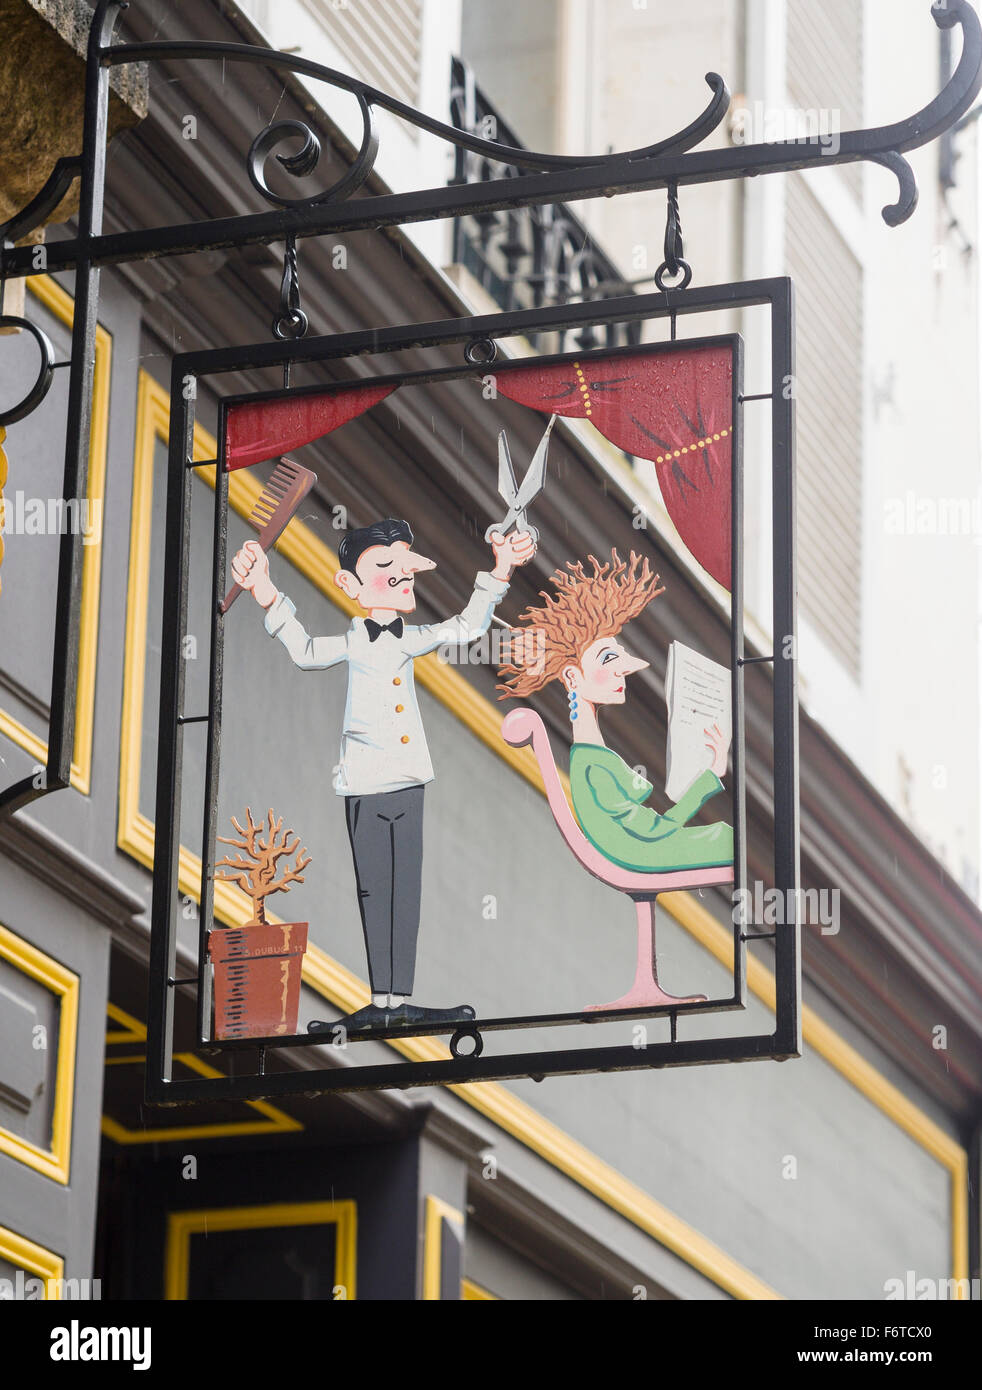 A sign for a Hair Dresser's shop in Loches. A sign depicting a hair stylist and a woman with fly-away hair advertises - Stock Image